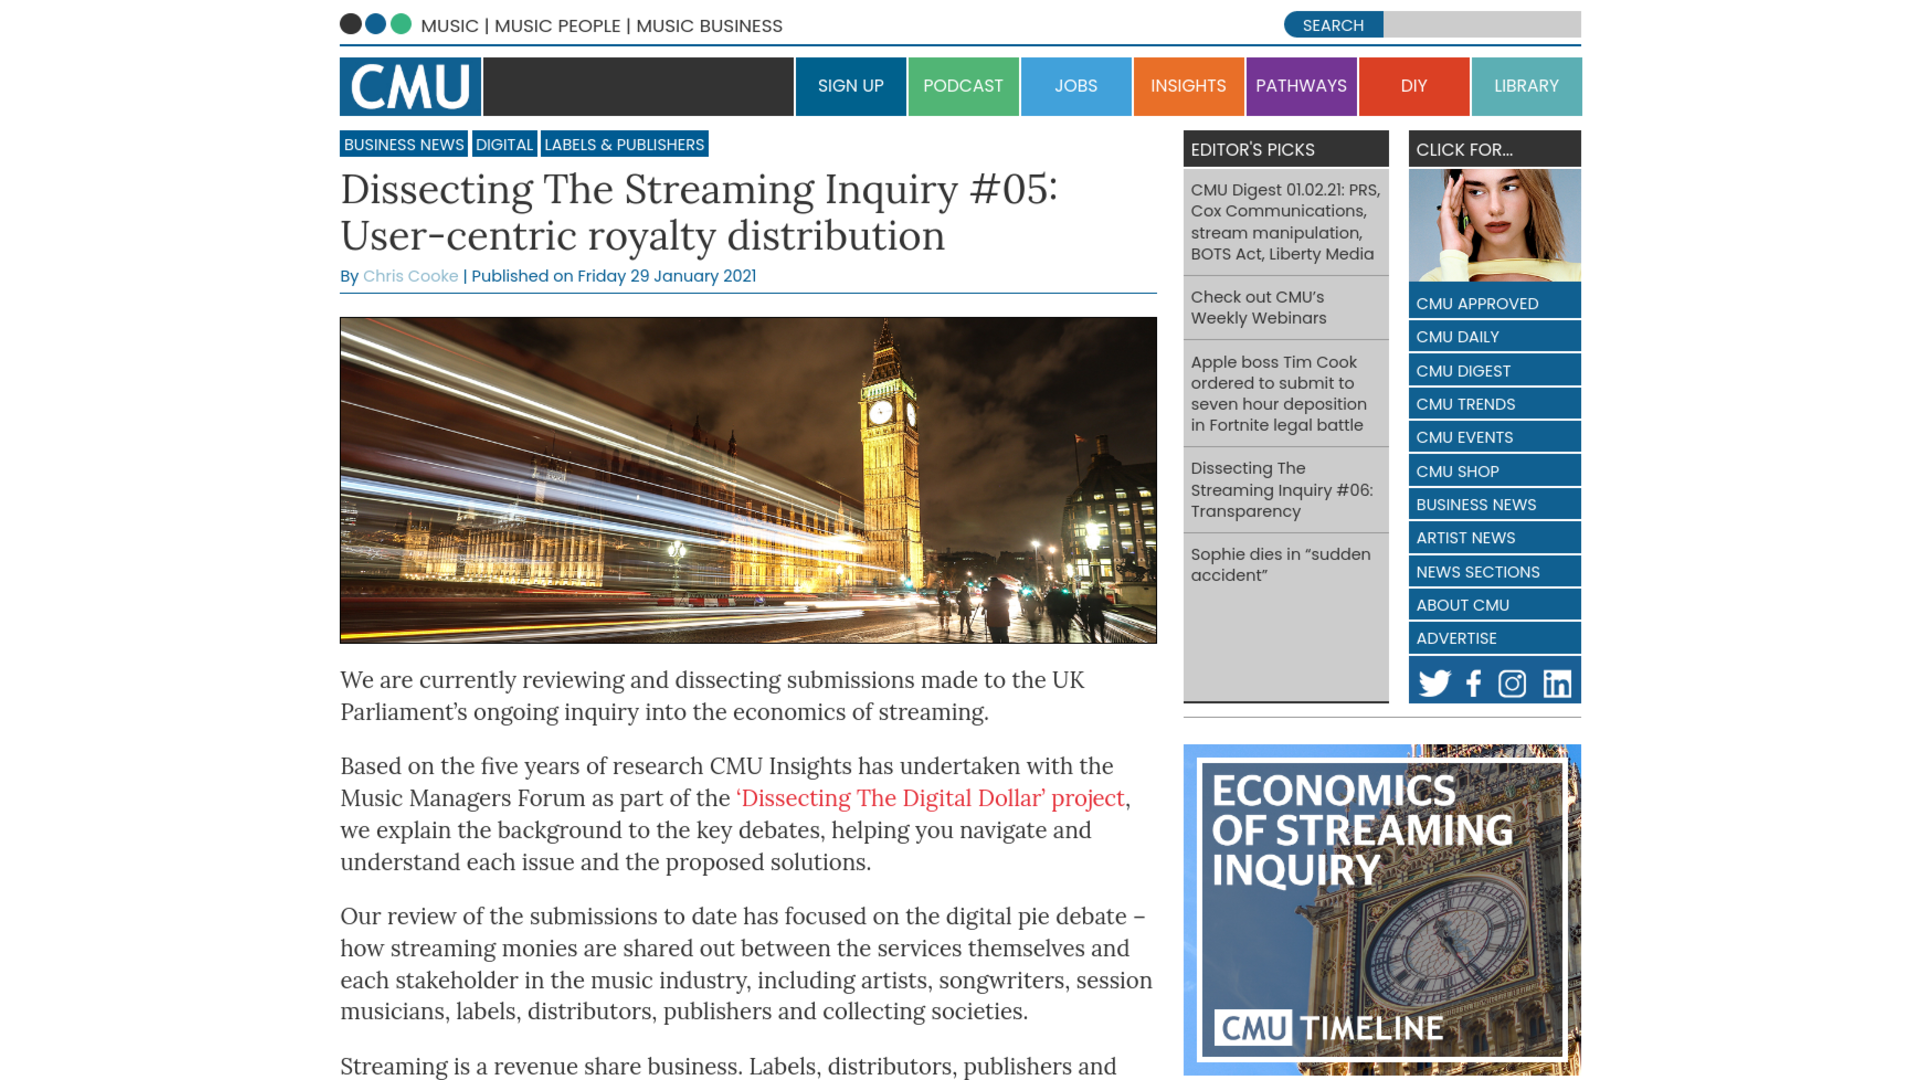 Fairness Rocks News Dissecting The Streaming Inquiry #05: User-centric royalty distribution